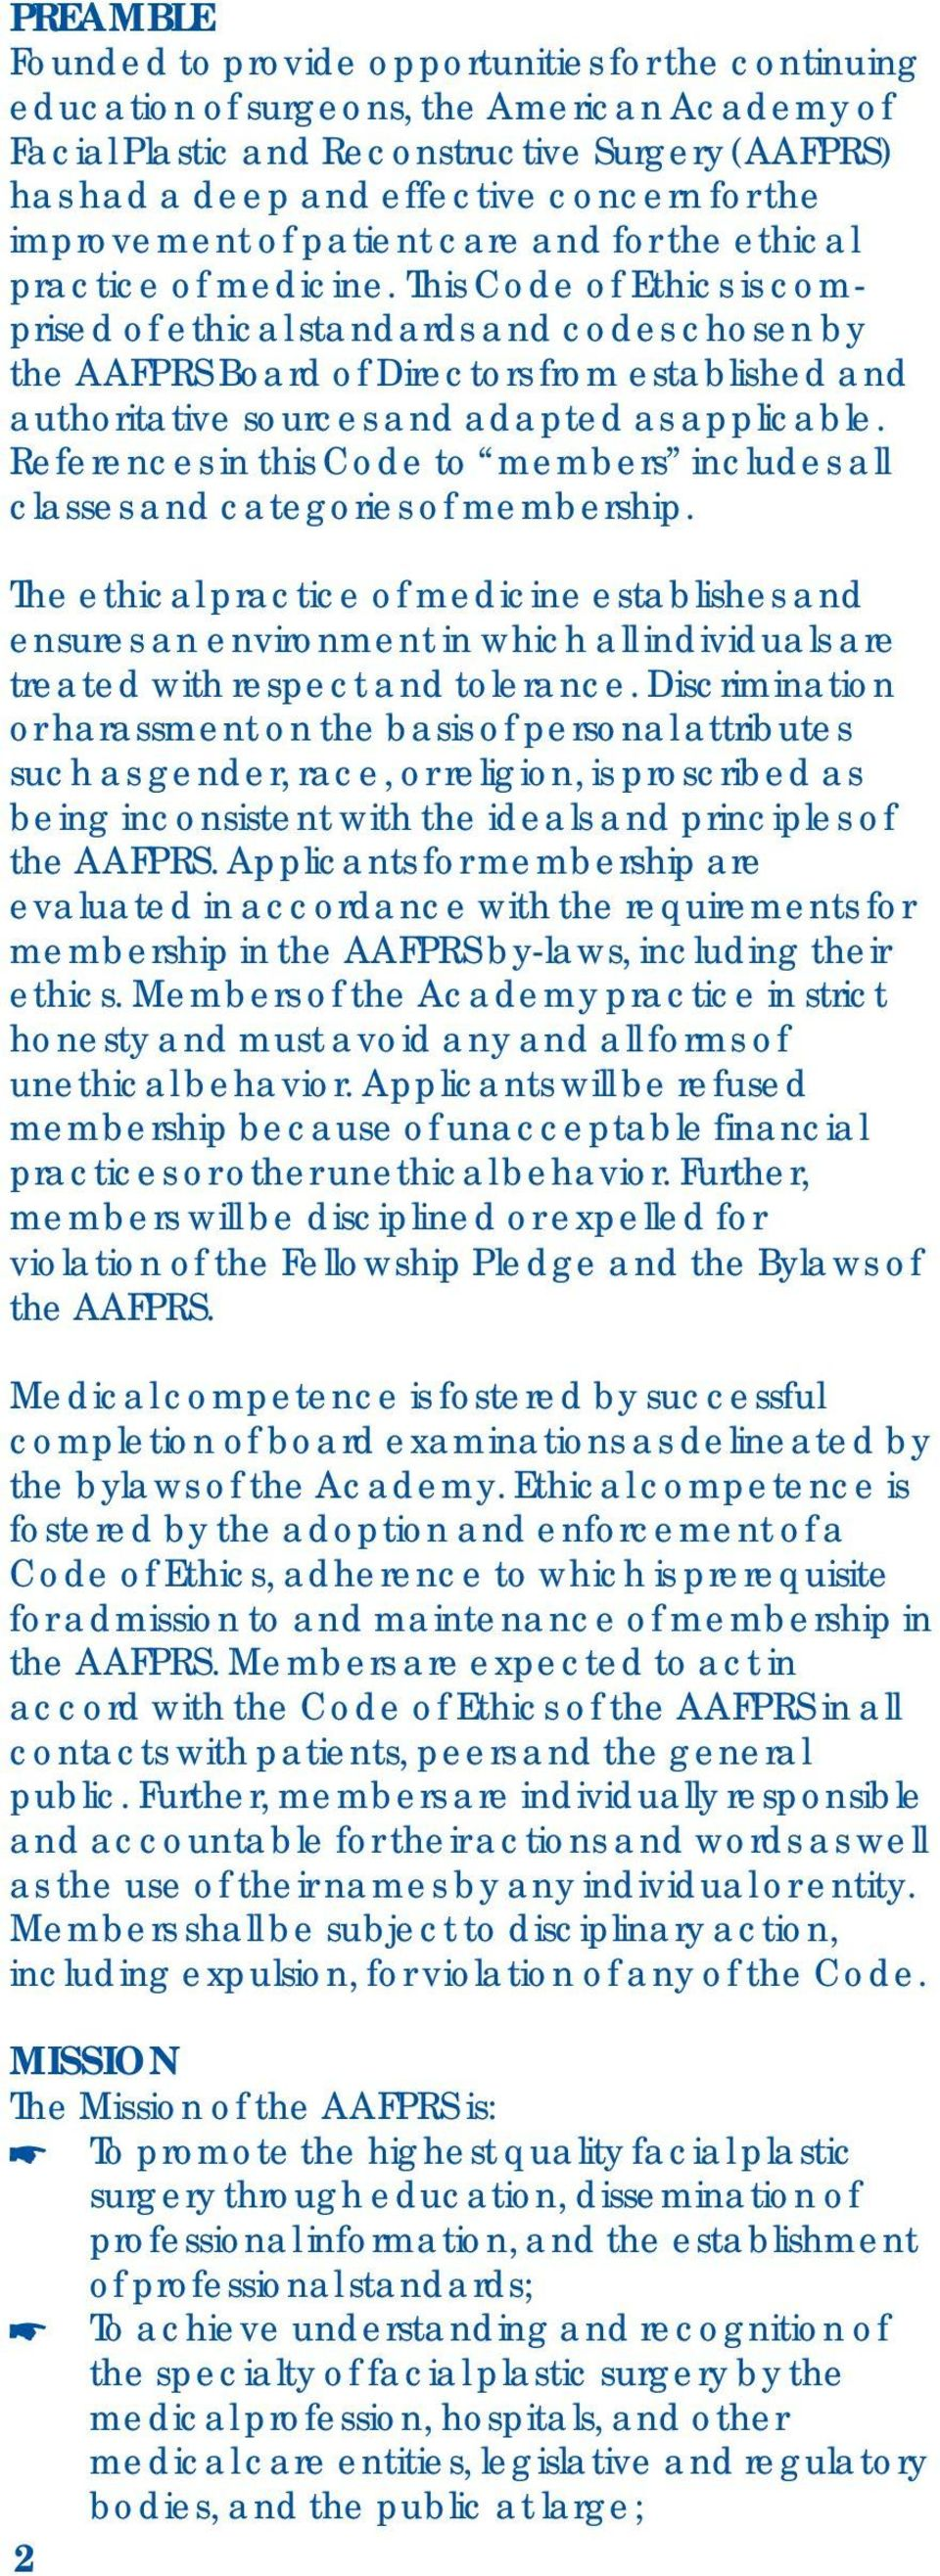 This Code of Ethics is comprised of ethical standards and codes chosen by the AAFPRS Board of Directors from established and authoritative sources and adapted as applicable.